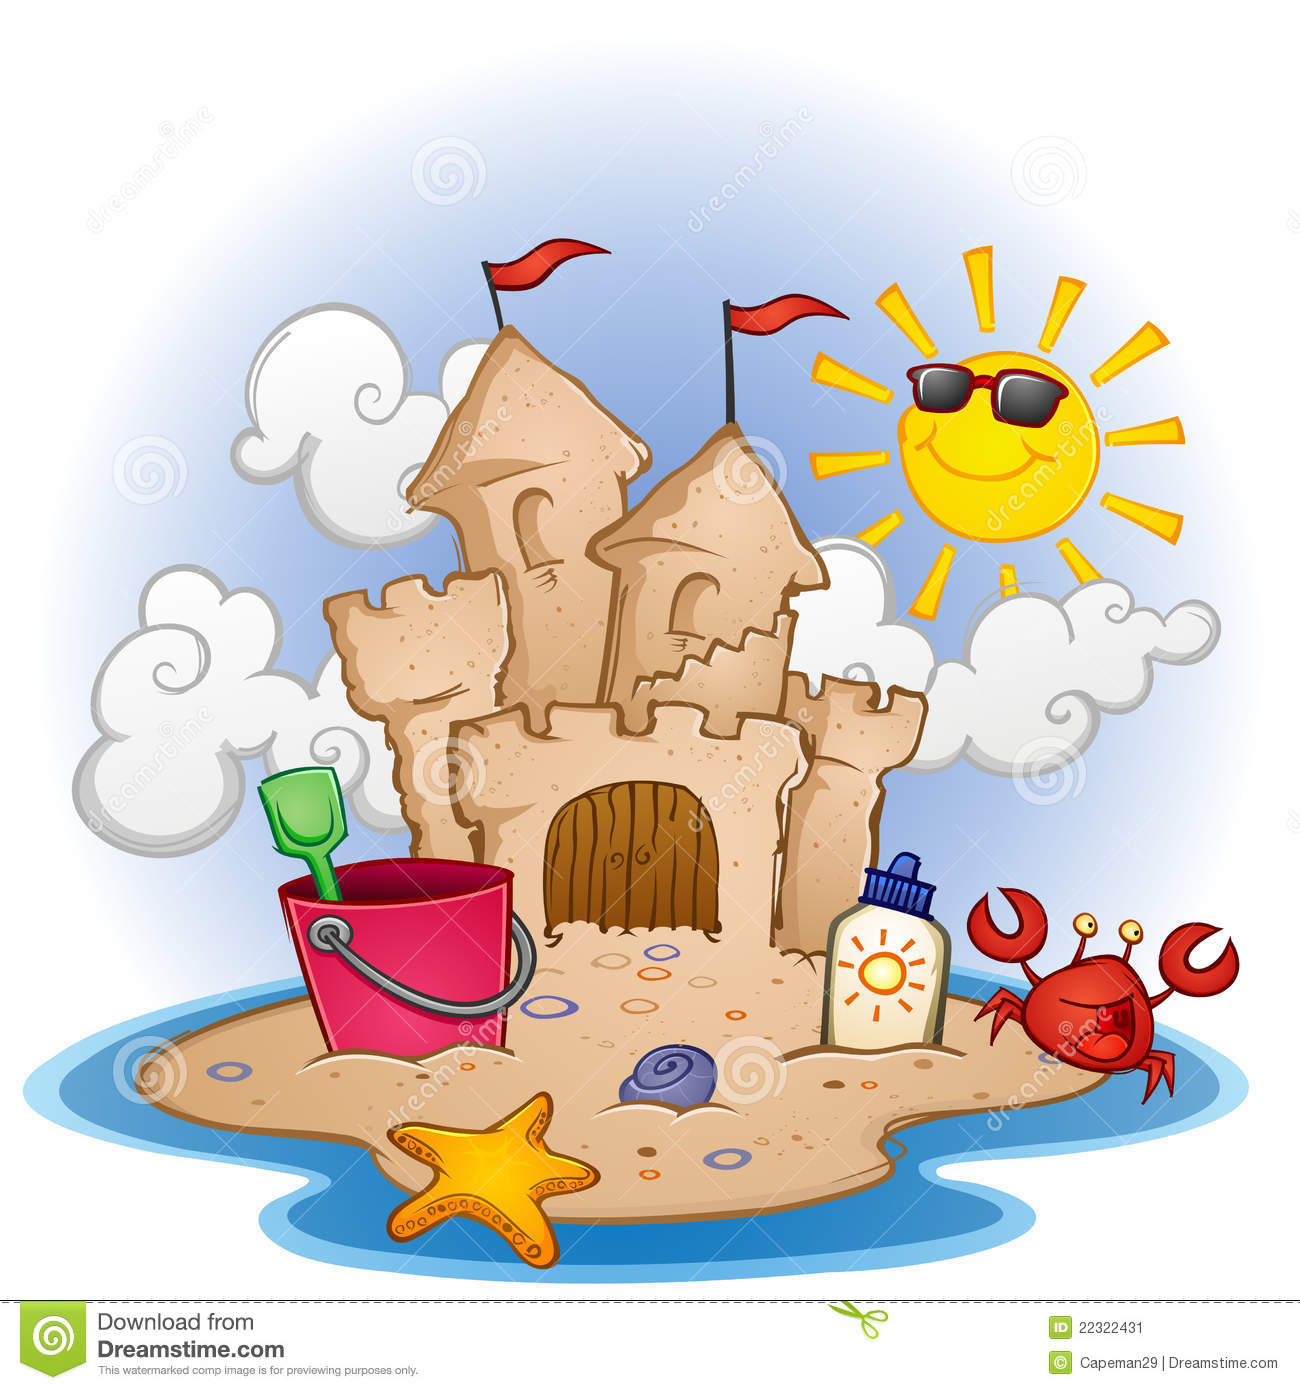 Sandcastle clipart #16, Download drawings